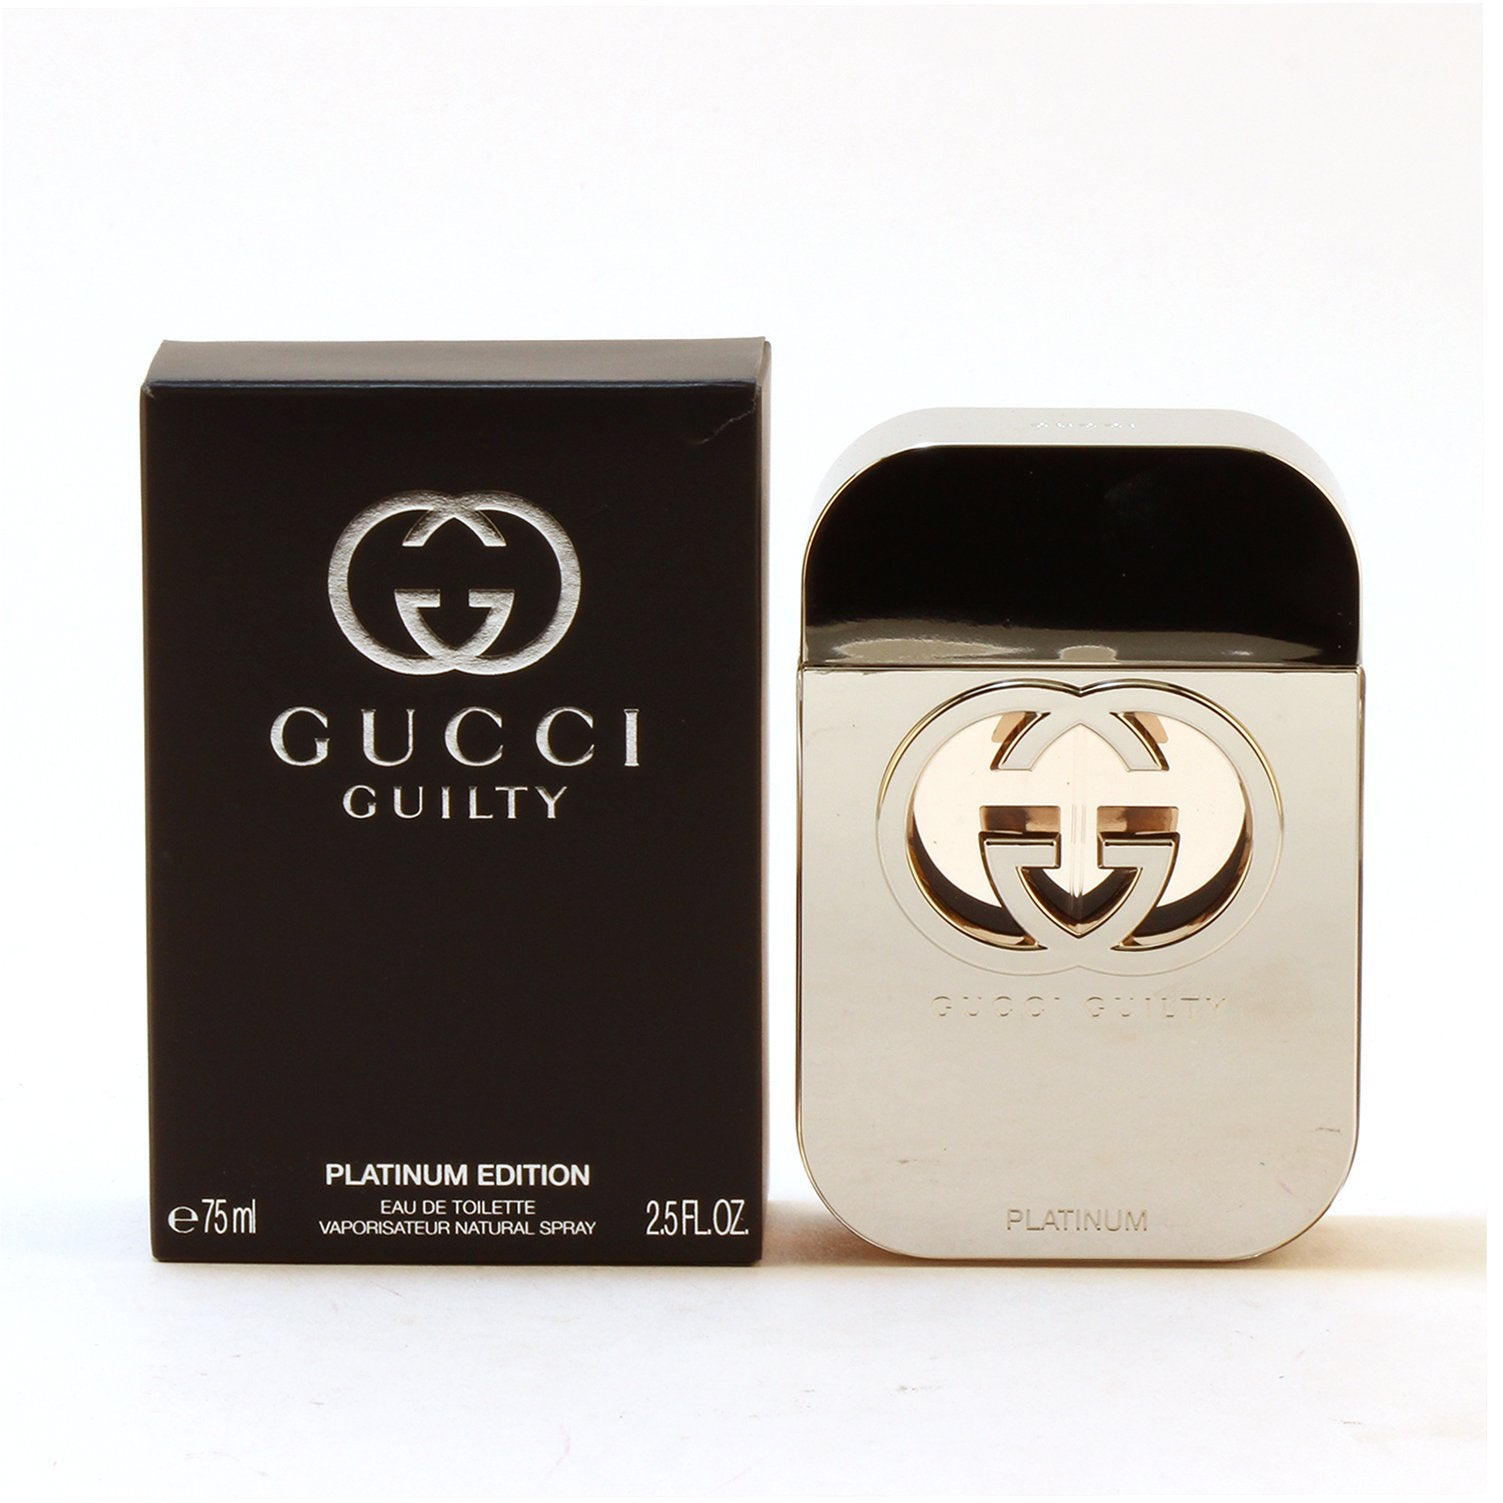 0f21d2f36a7 Perfume - GUCCI GUILTY PLATINUM FOR WOMEN - EAU DE TOILETTE SPRAY